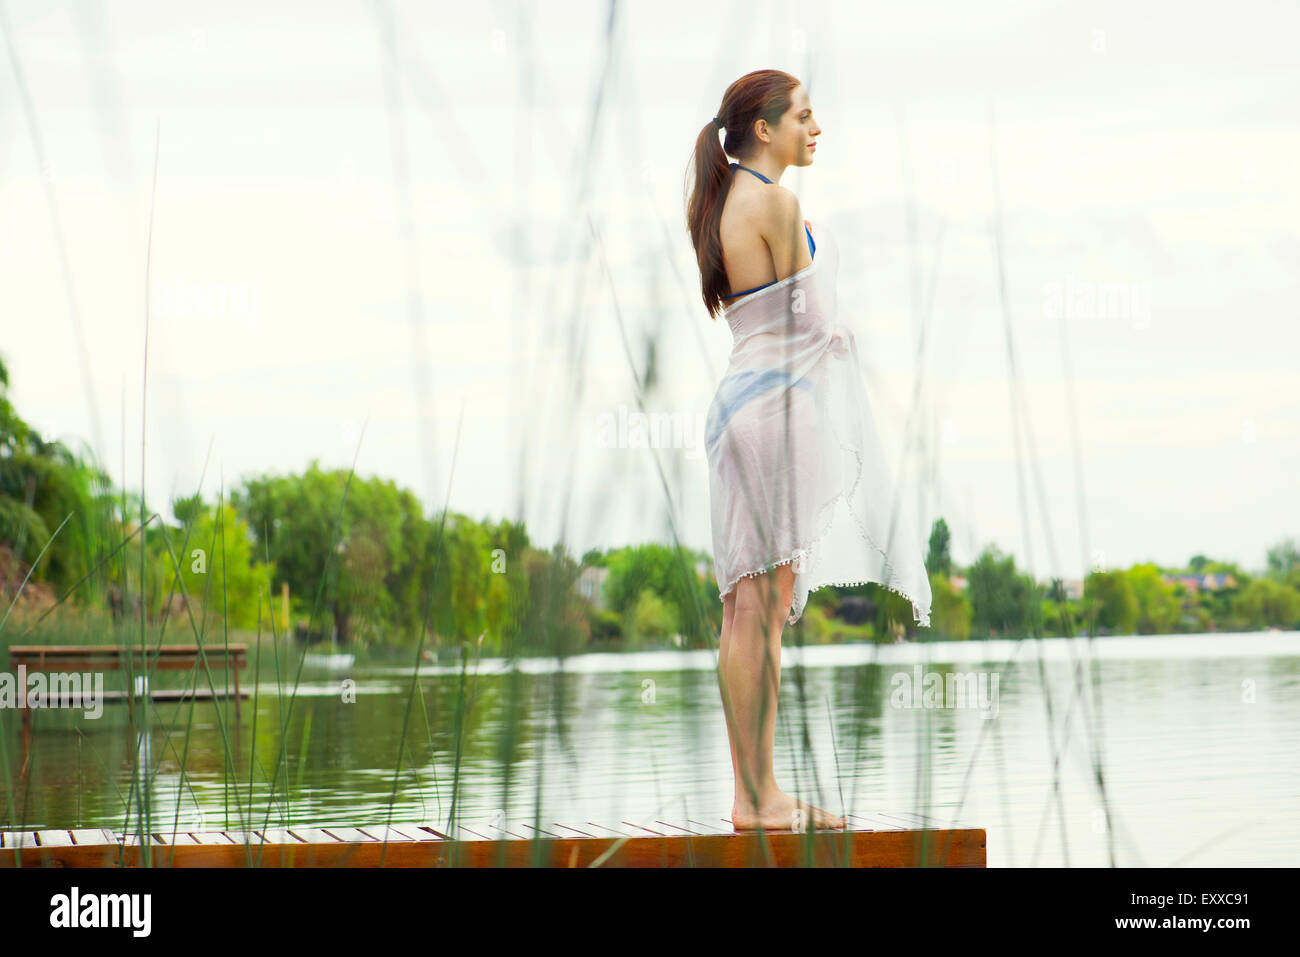 Woman standing at end of lake pier enjoying view - Stock Image